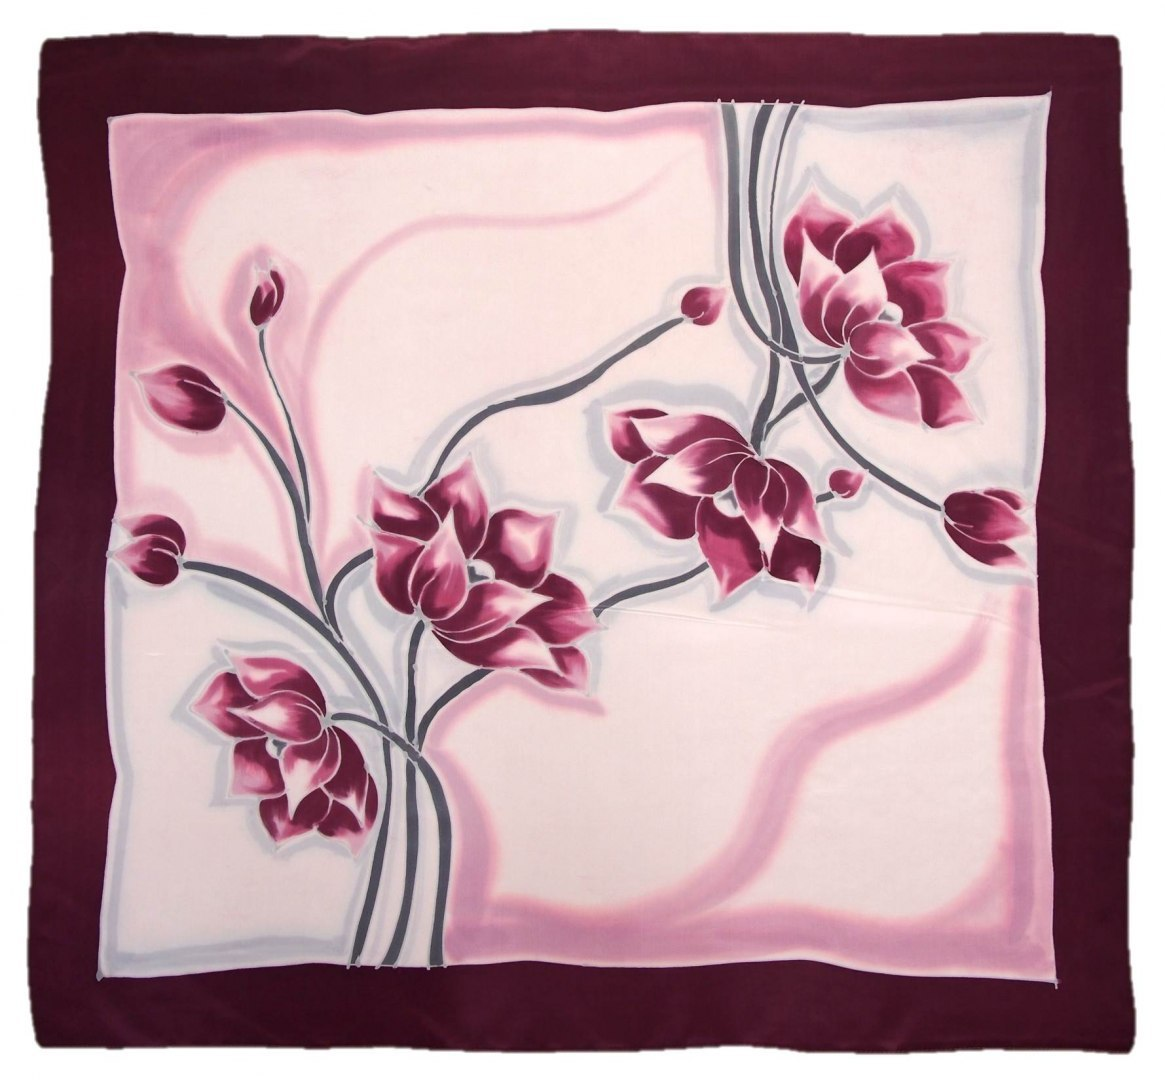 AM-476 Hand-painted silk scarf, 90x90cm